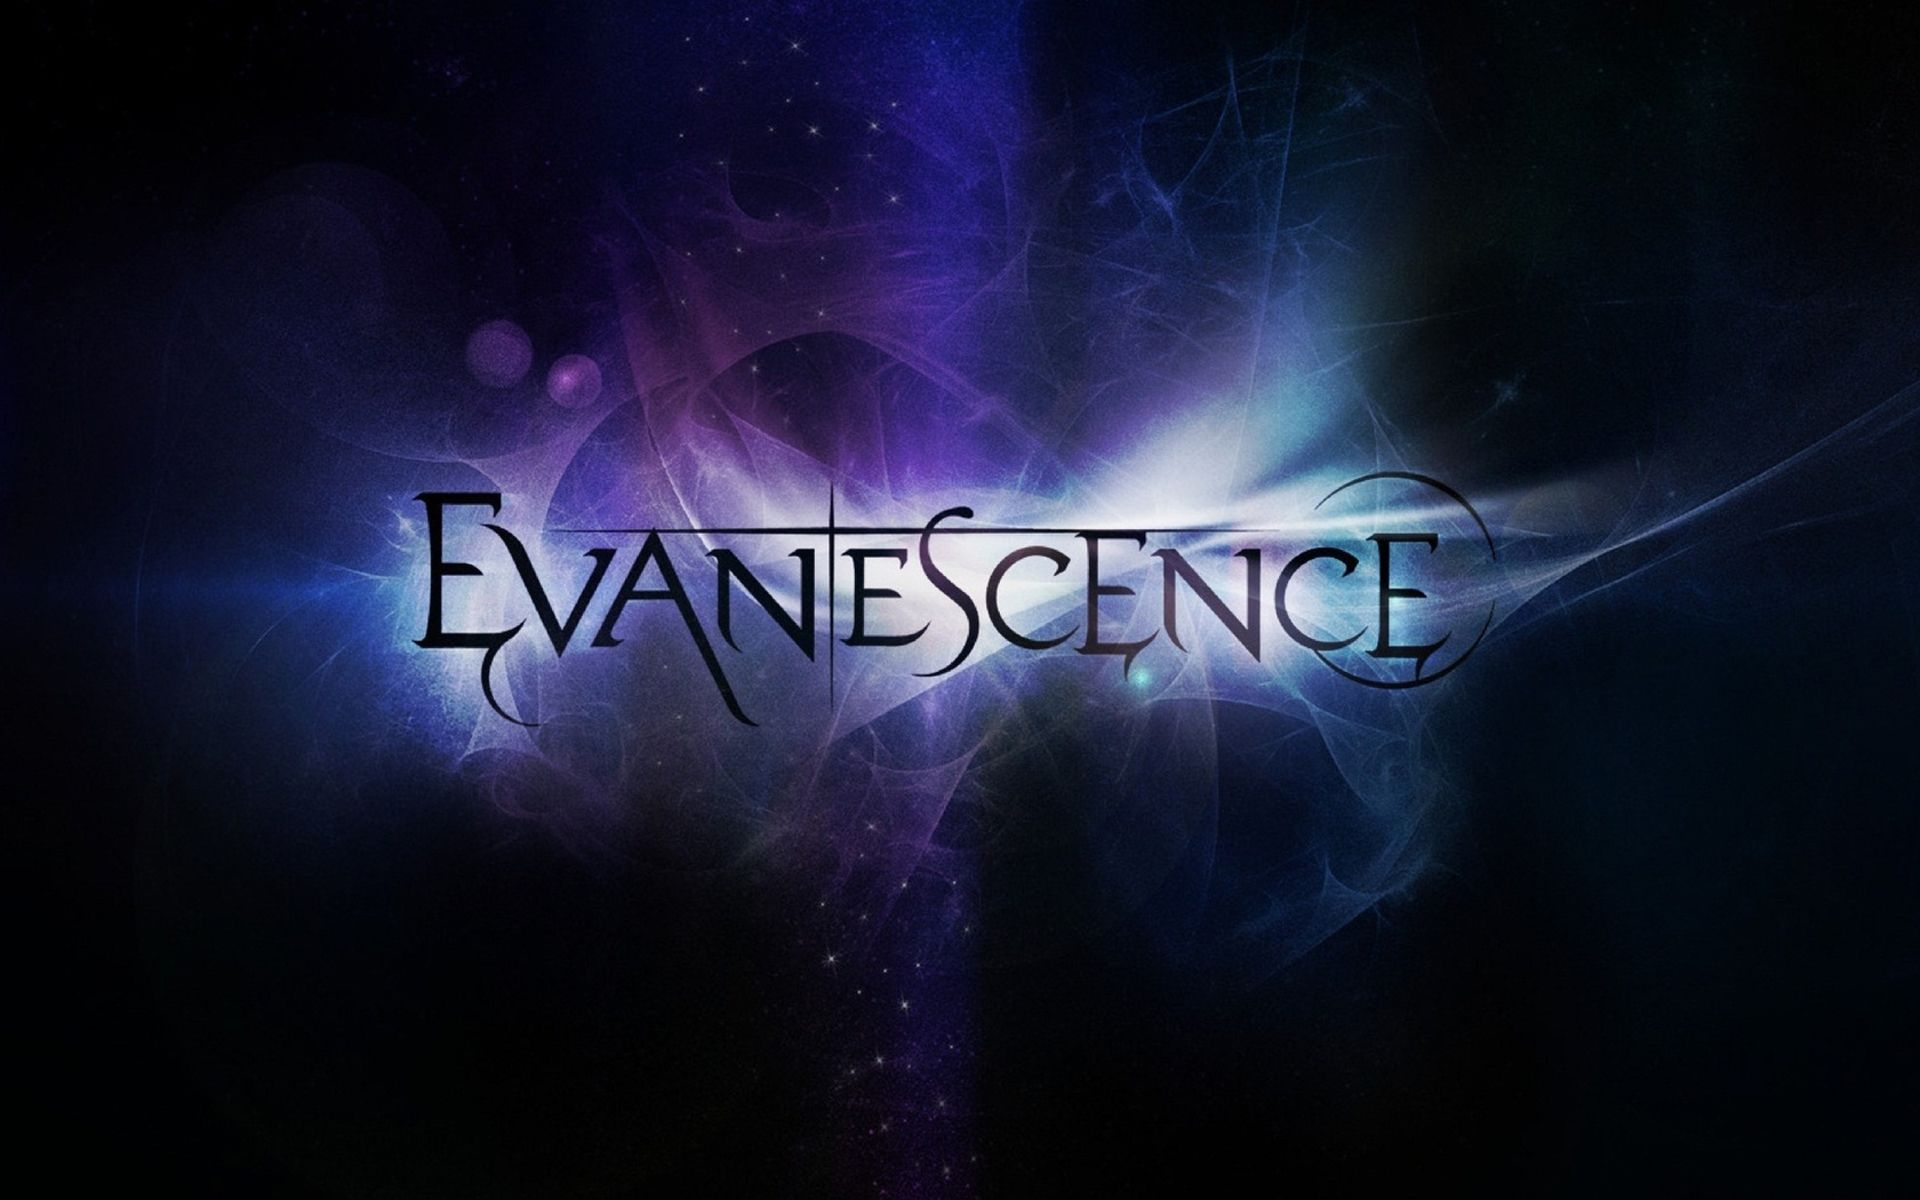 Evanescence Evanescence Album wallpaper   943343 1920x1200